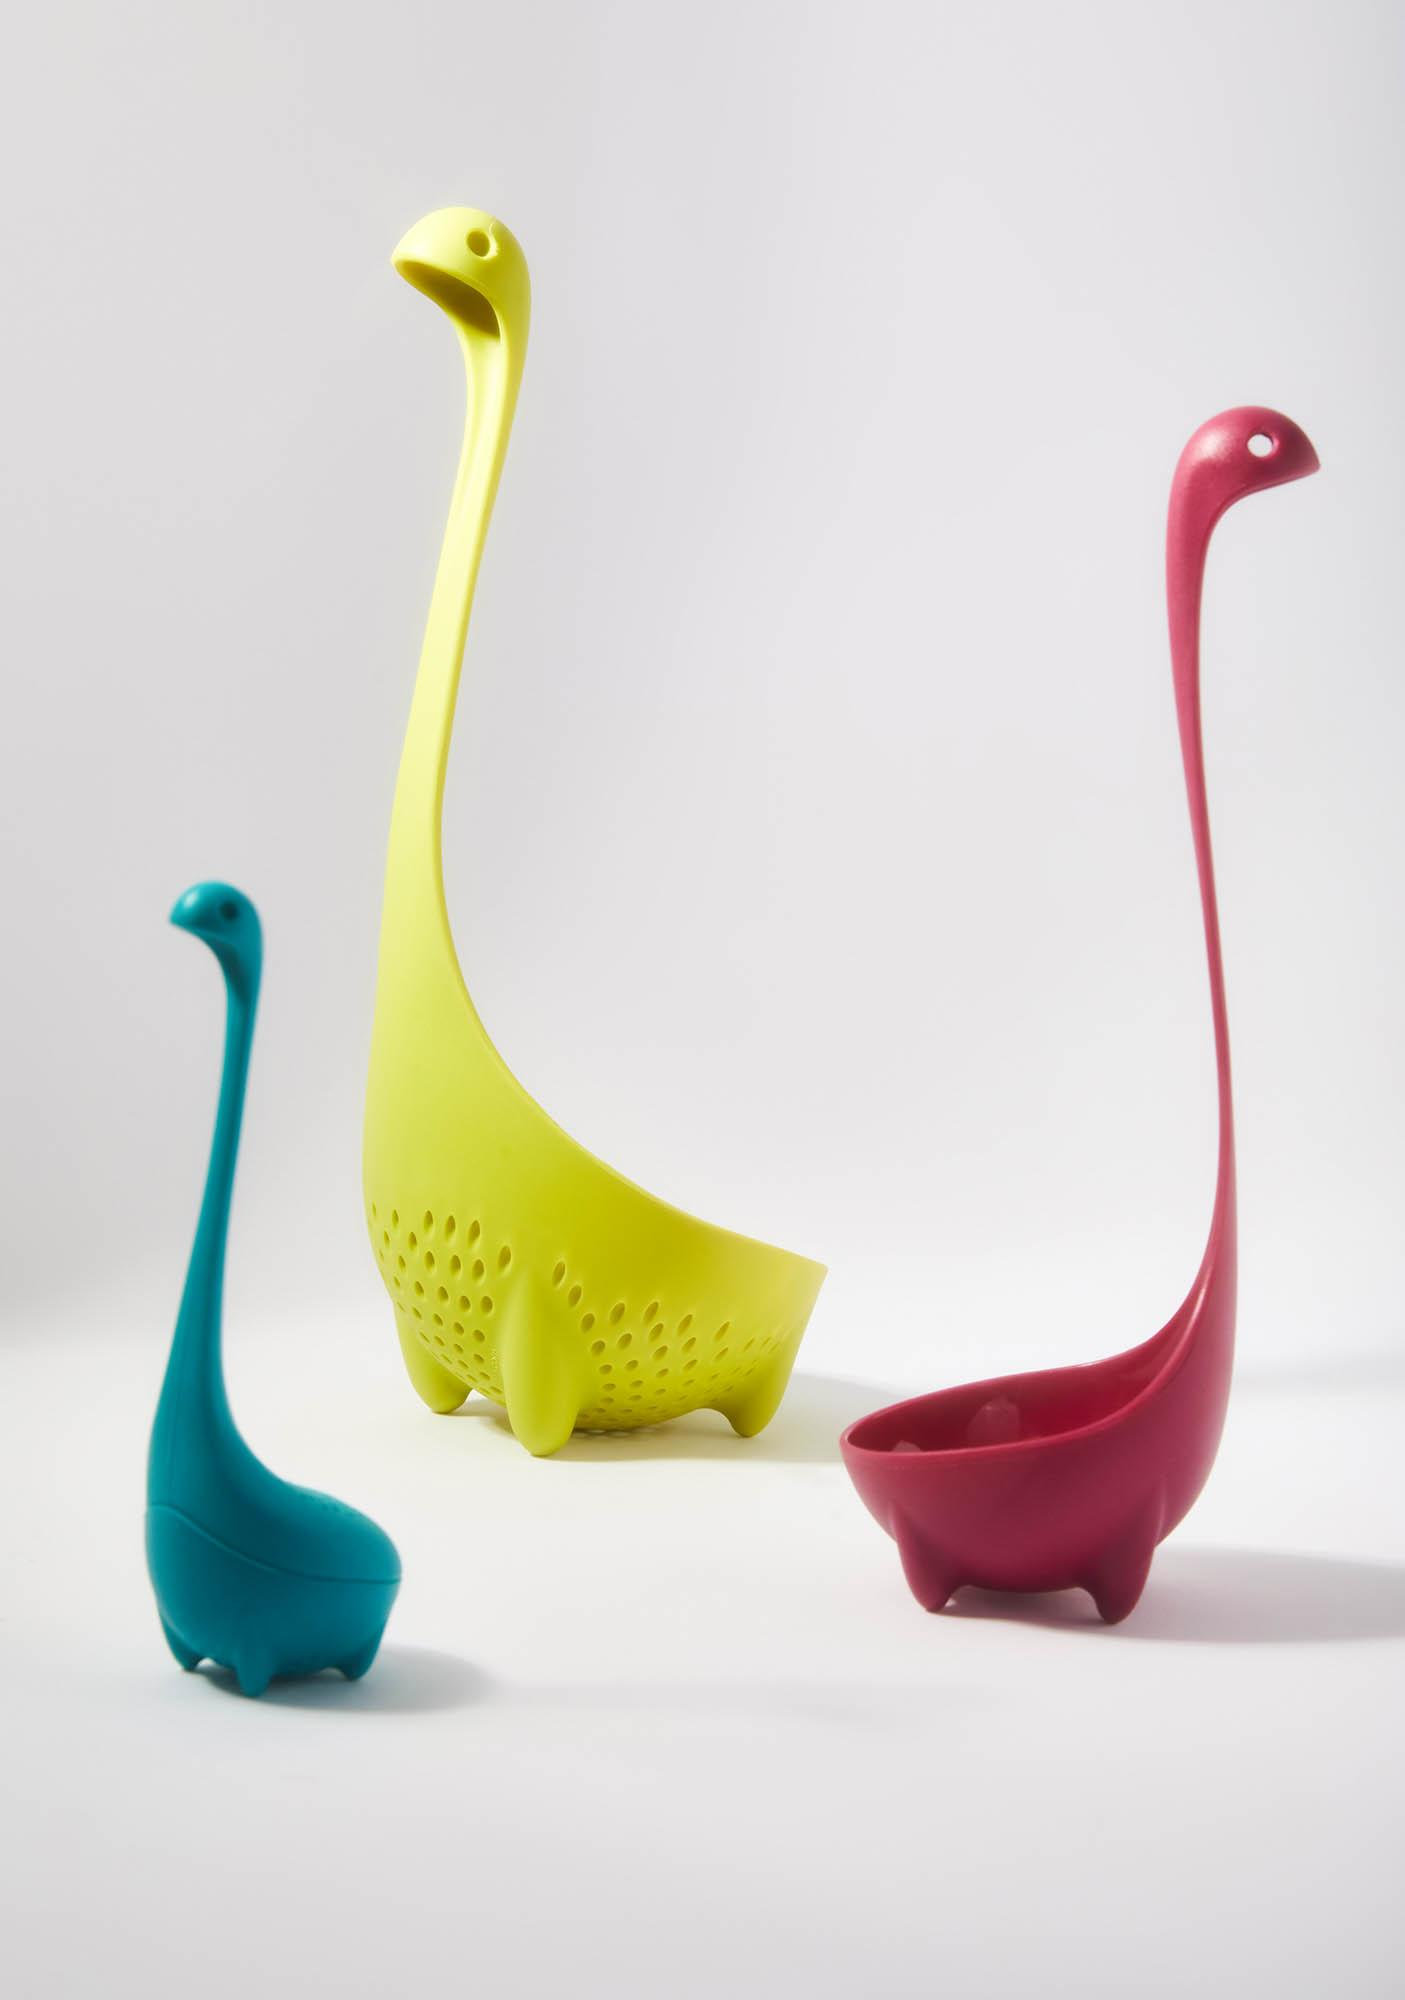 OTOTO The Nessie Family Kitchen Ware Set